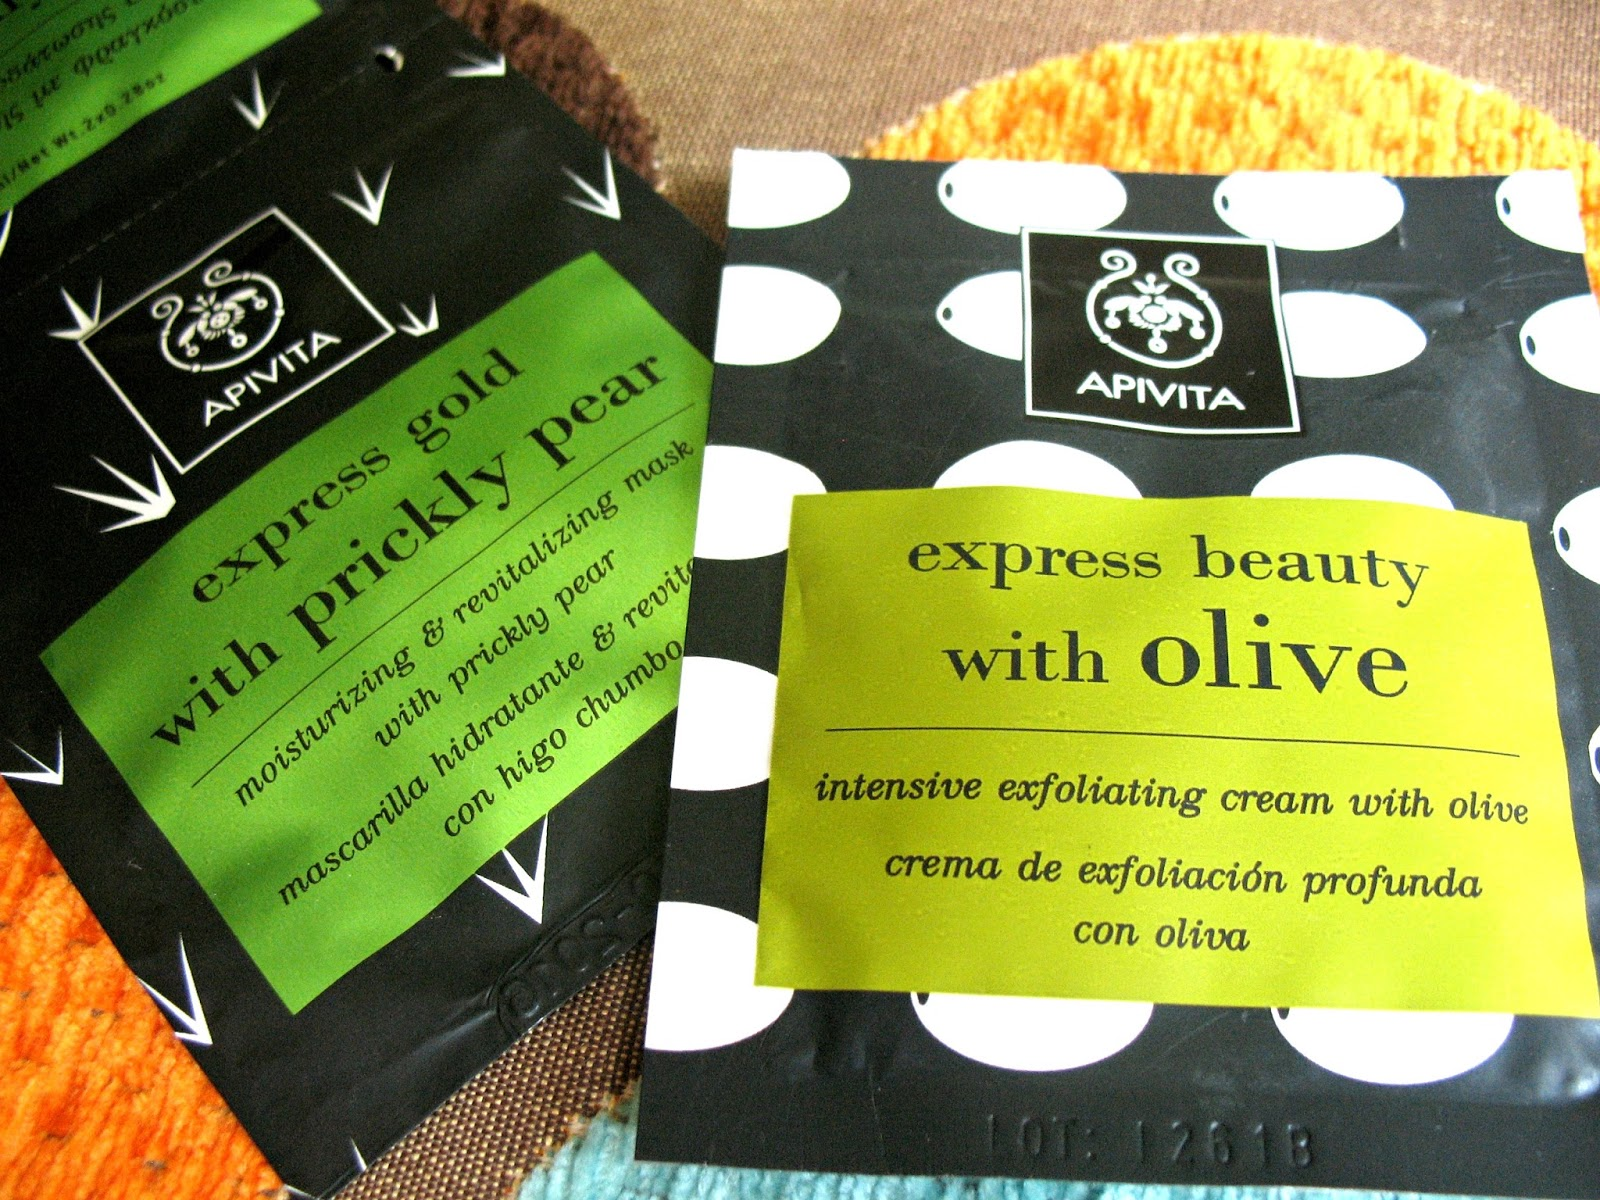 Apivita_skincare_facial_mask_scrub_olive_prickly_pear_review_01